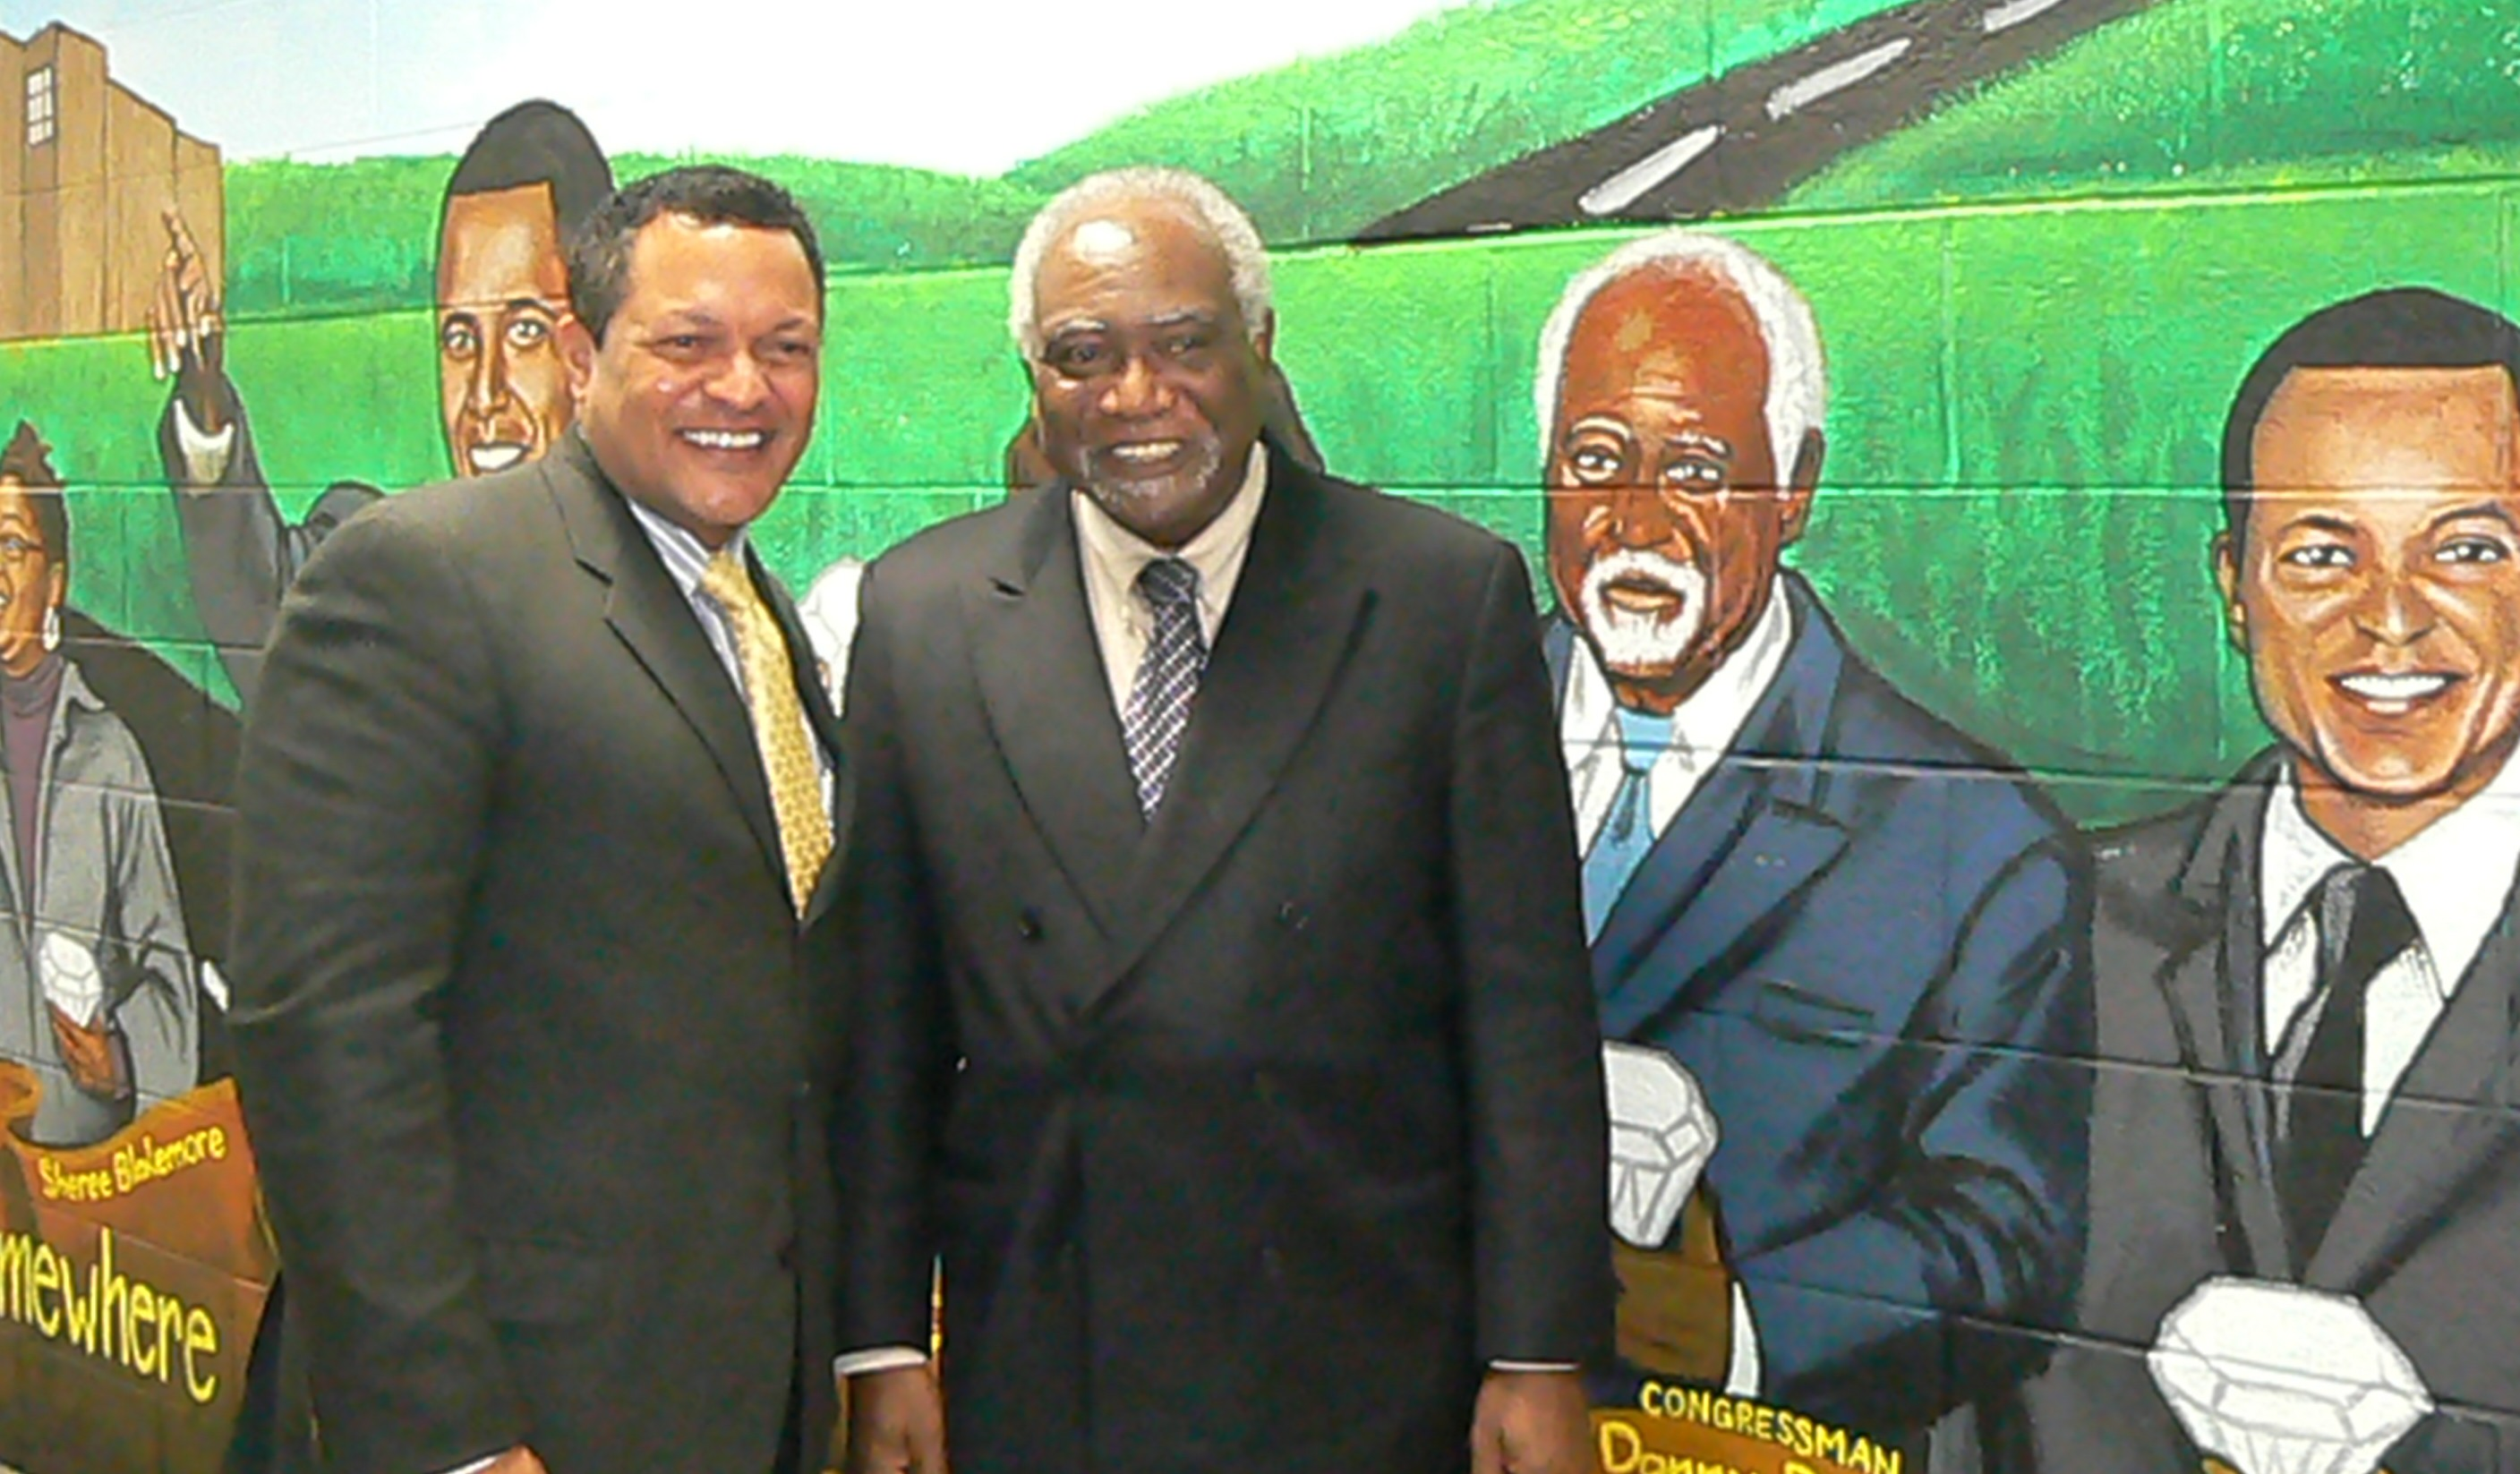 Cong. Danny Davis and Kenneth Morris stand beside their images painted in a mural at Frederick Douglass High School.